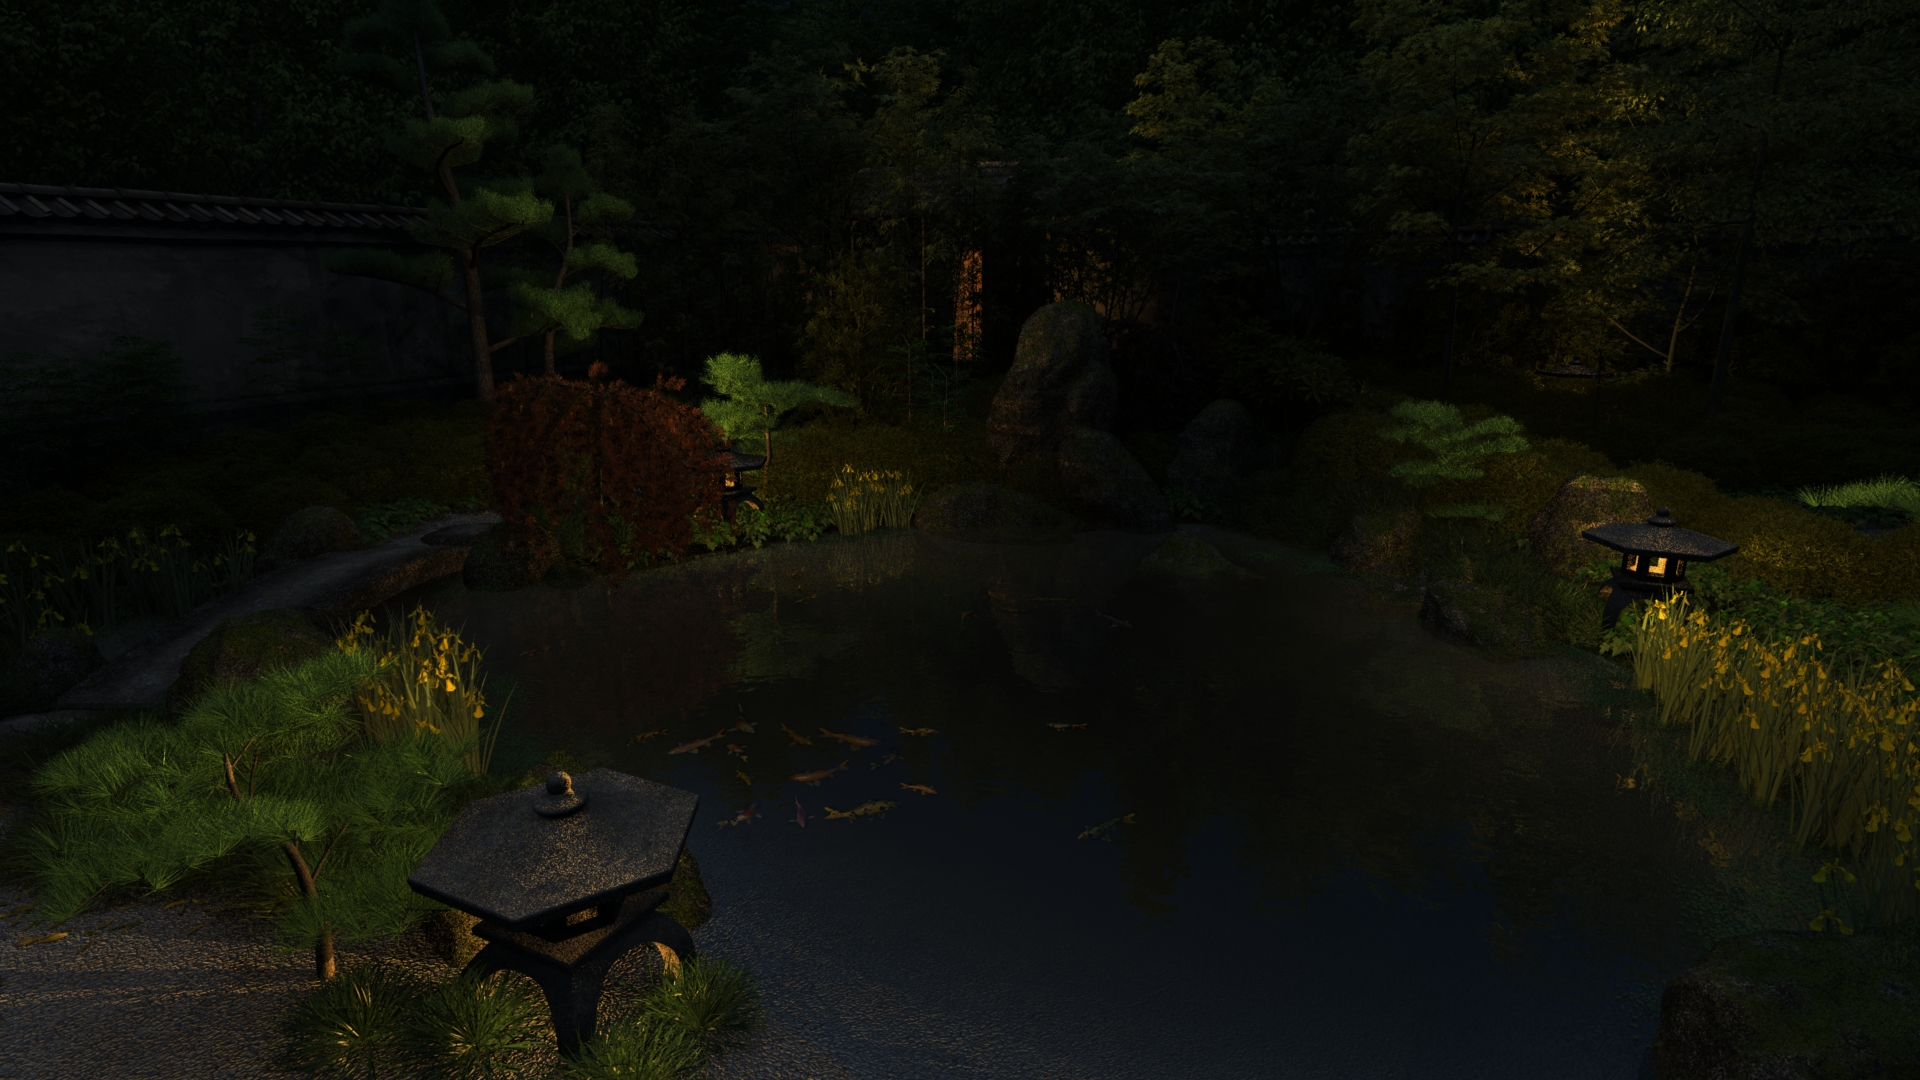 Japanese Garden At Night japanese tea garden nightjdaughtry on deviantart